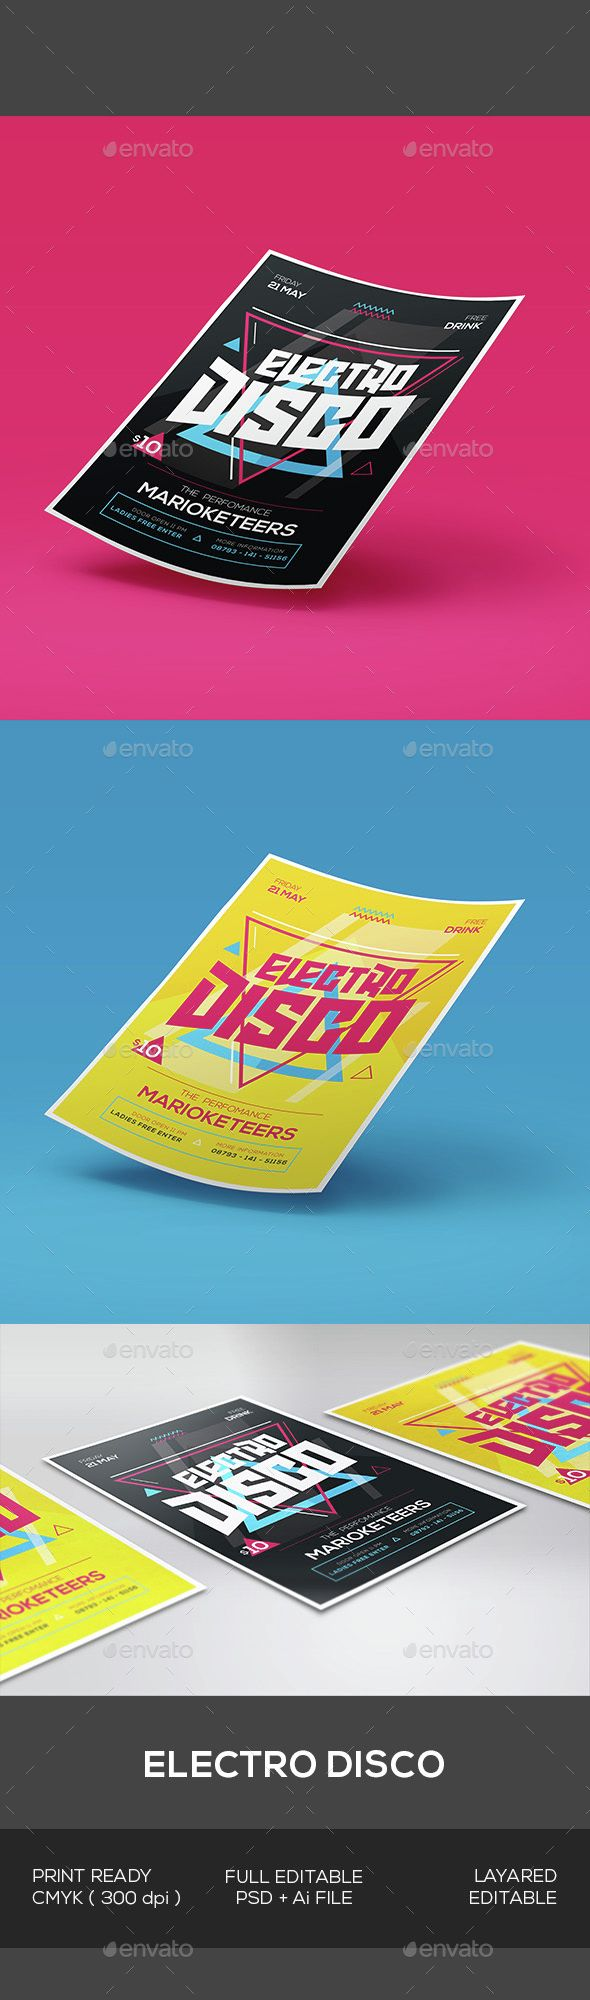 Electro Disco Flyer — Photoshop PSD #grunge #brush • Available here → https://graphicriver.net/item/electro-disco-flyer/15306095?ref=pxcr